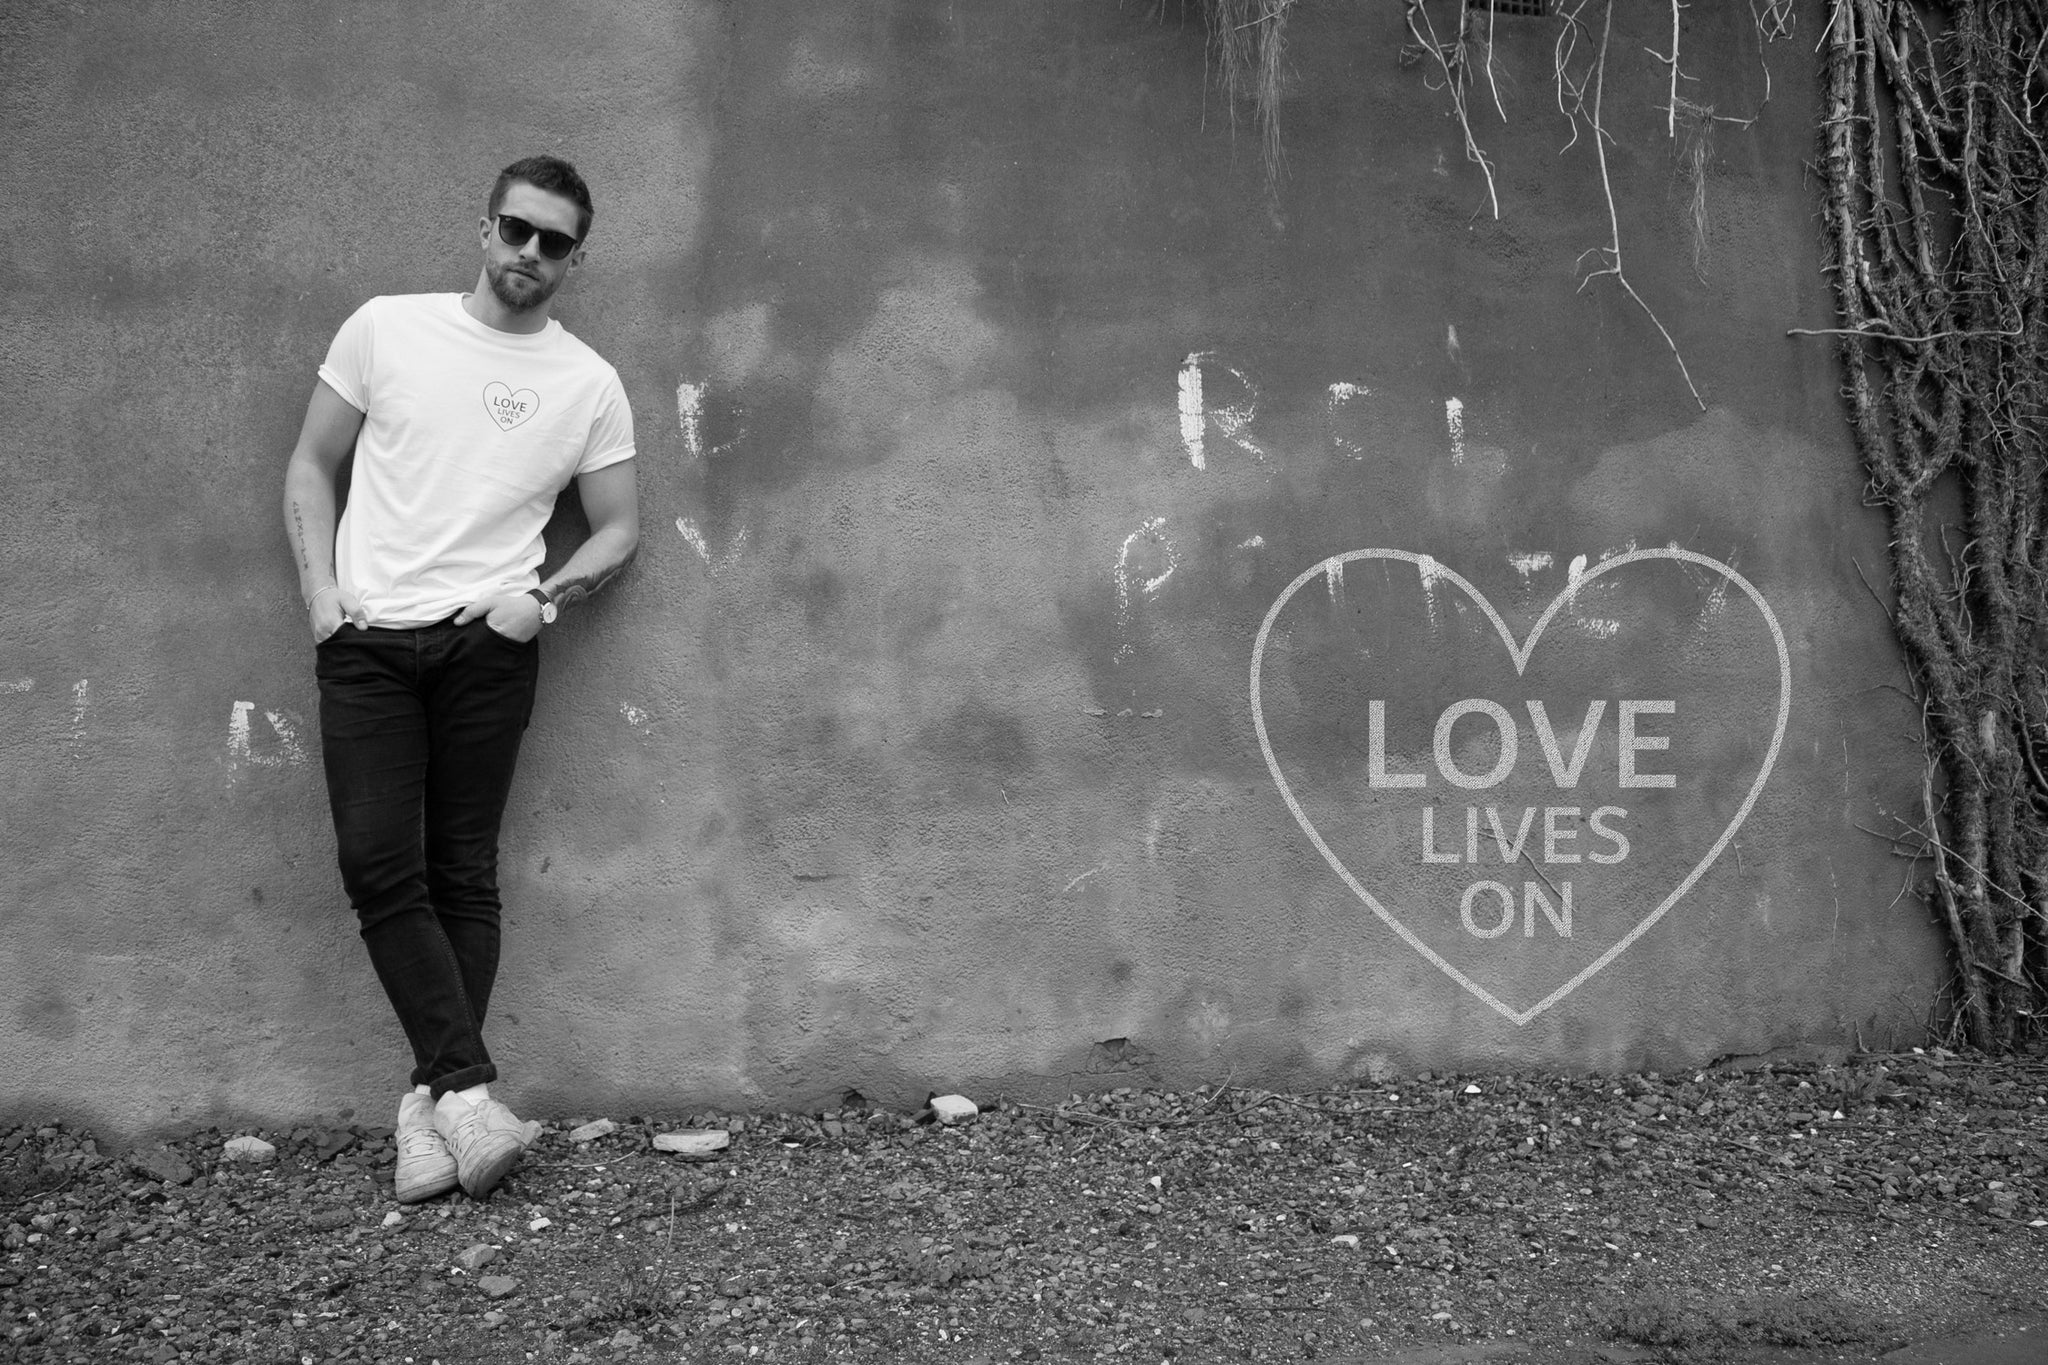 Love Lives On by Matt Linnen